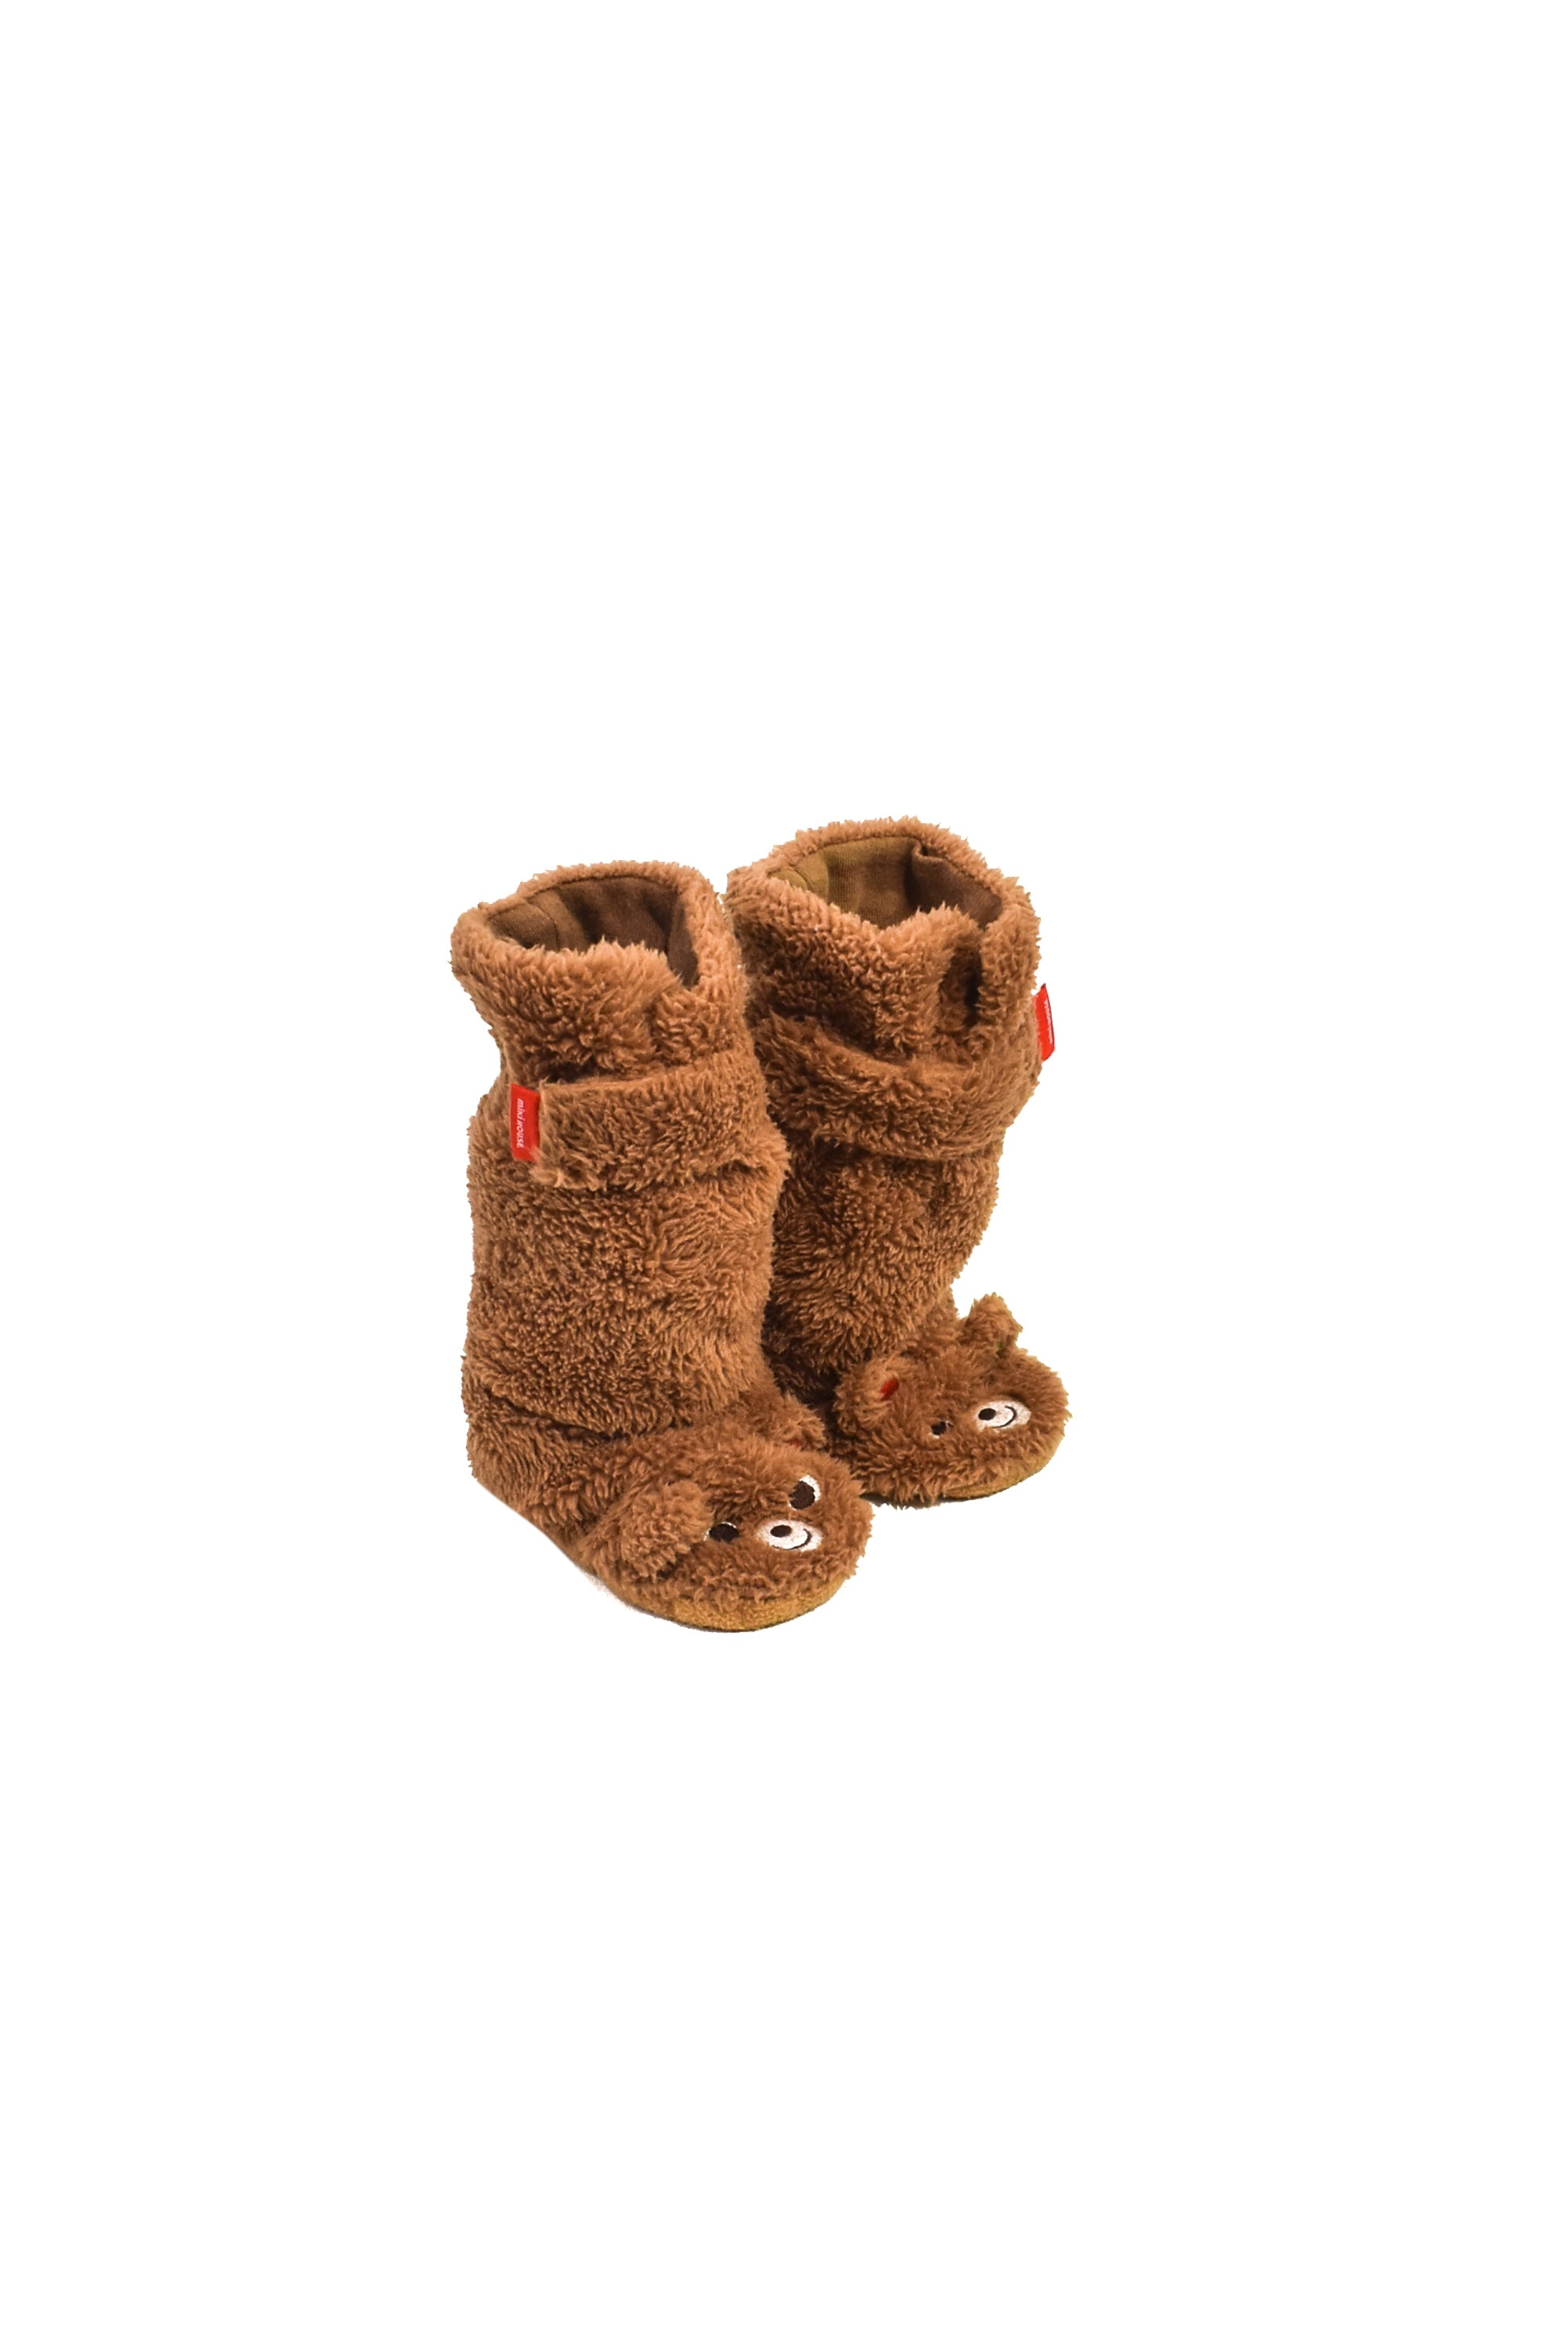 10031576 Miki House Baby~Booties 6-12M at Retykle